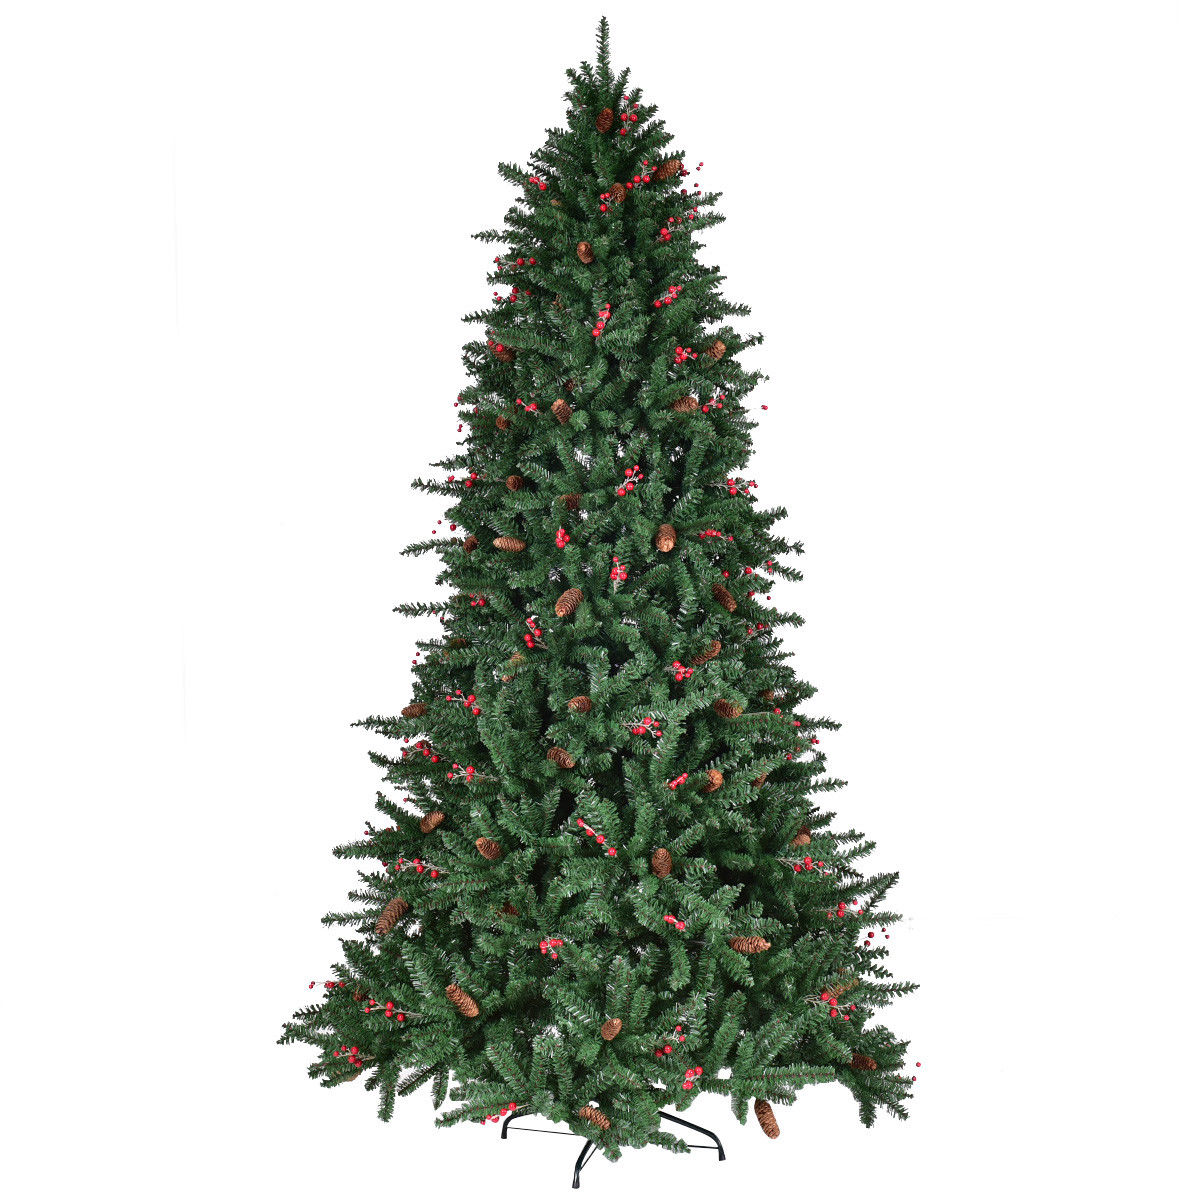 Red Red Pine Christmas Tree: Gymax 7' Artificial PVC Christmas Tree Red Berries & Pine